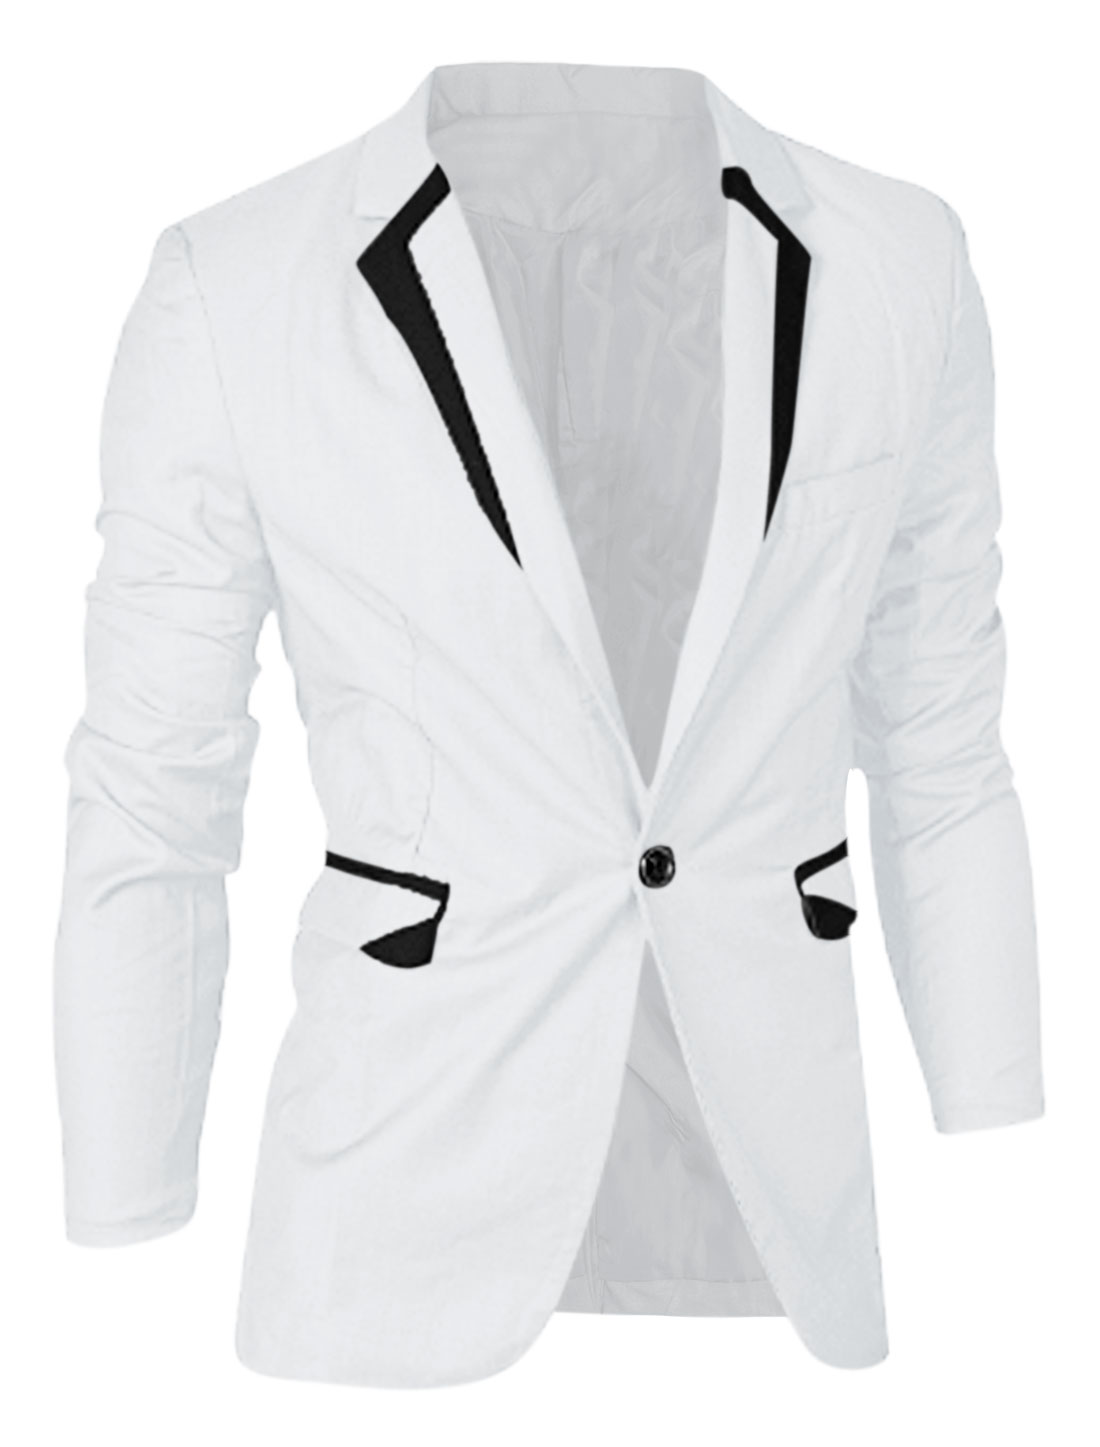 Men Notched Lapel Contrast Color Trendy Blazer Jacket White M